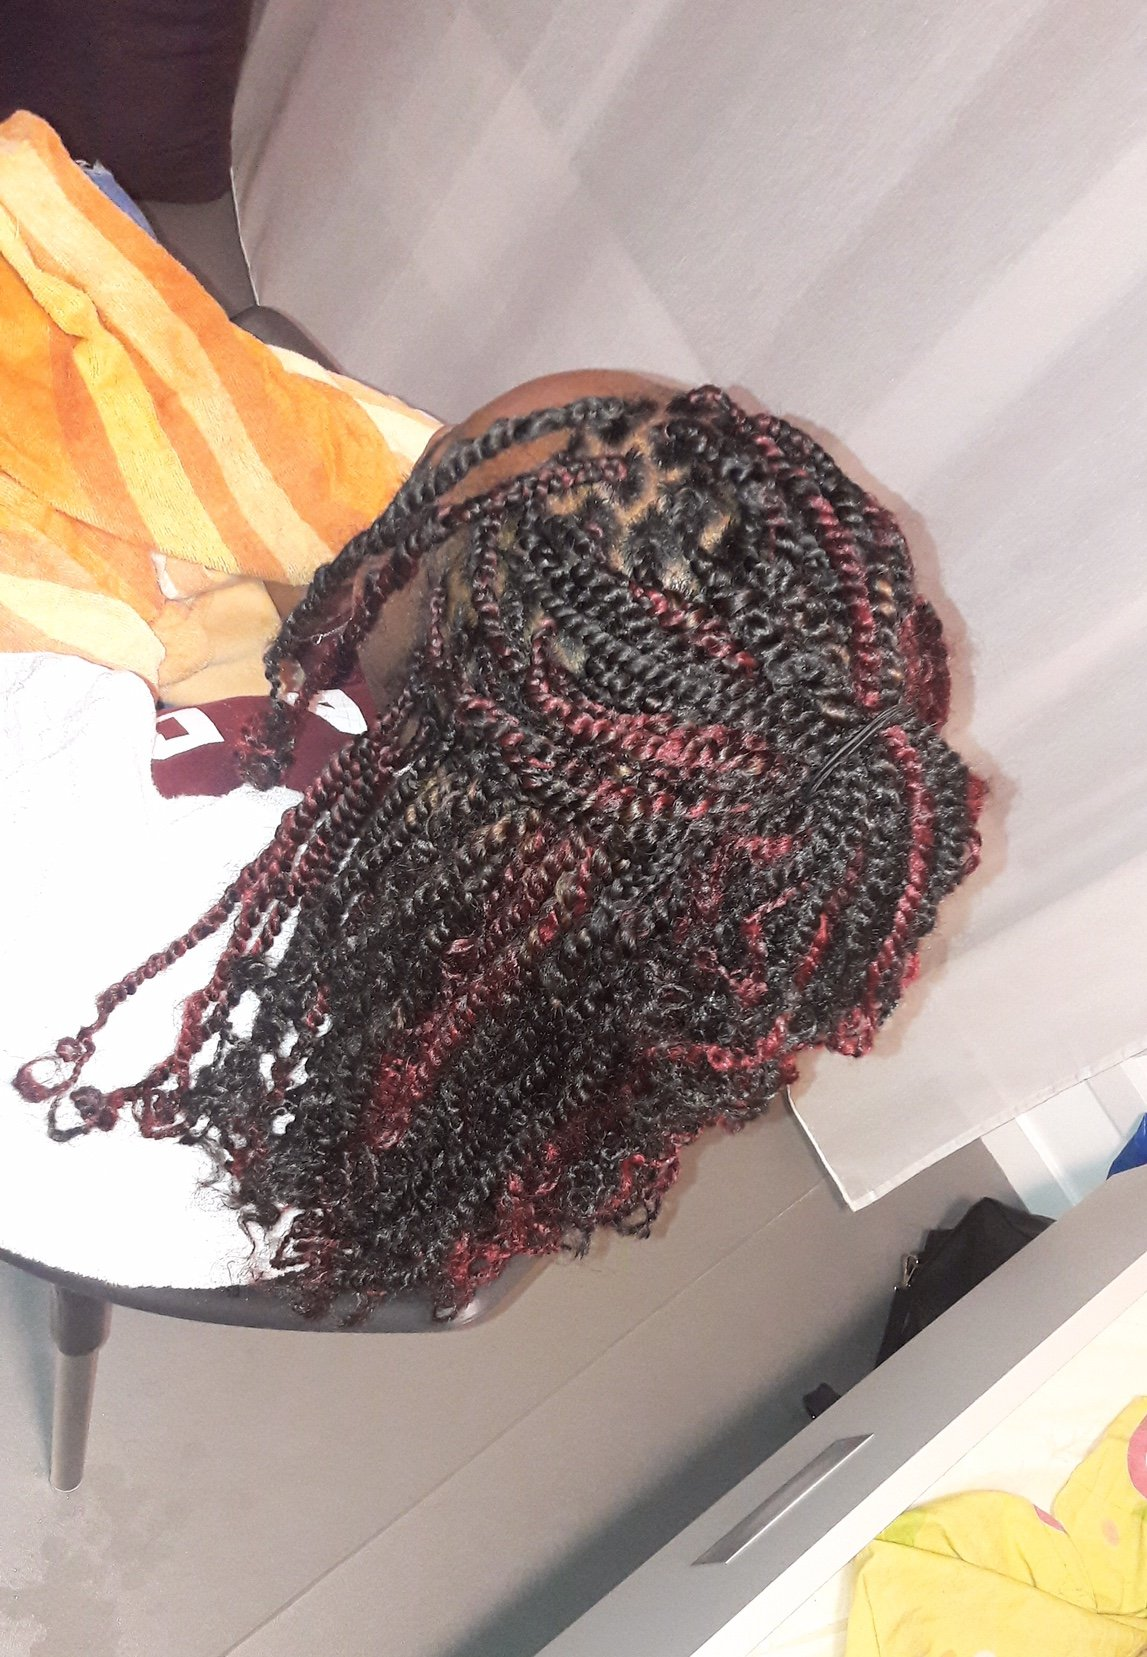 salon de coiffure afro tresse tresses box braids crochet braids vanilles tissages paris 75 77 78 91 92 93 94 95 QKWKQWOA